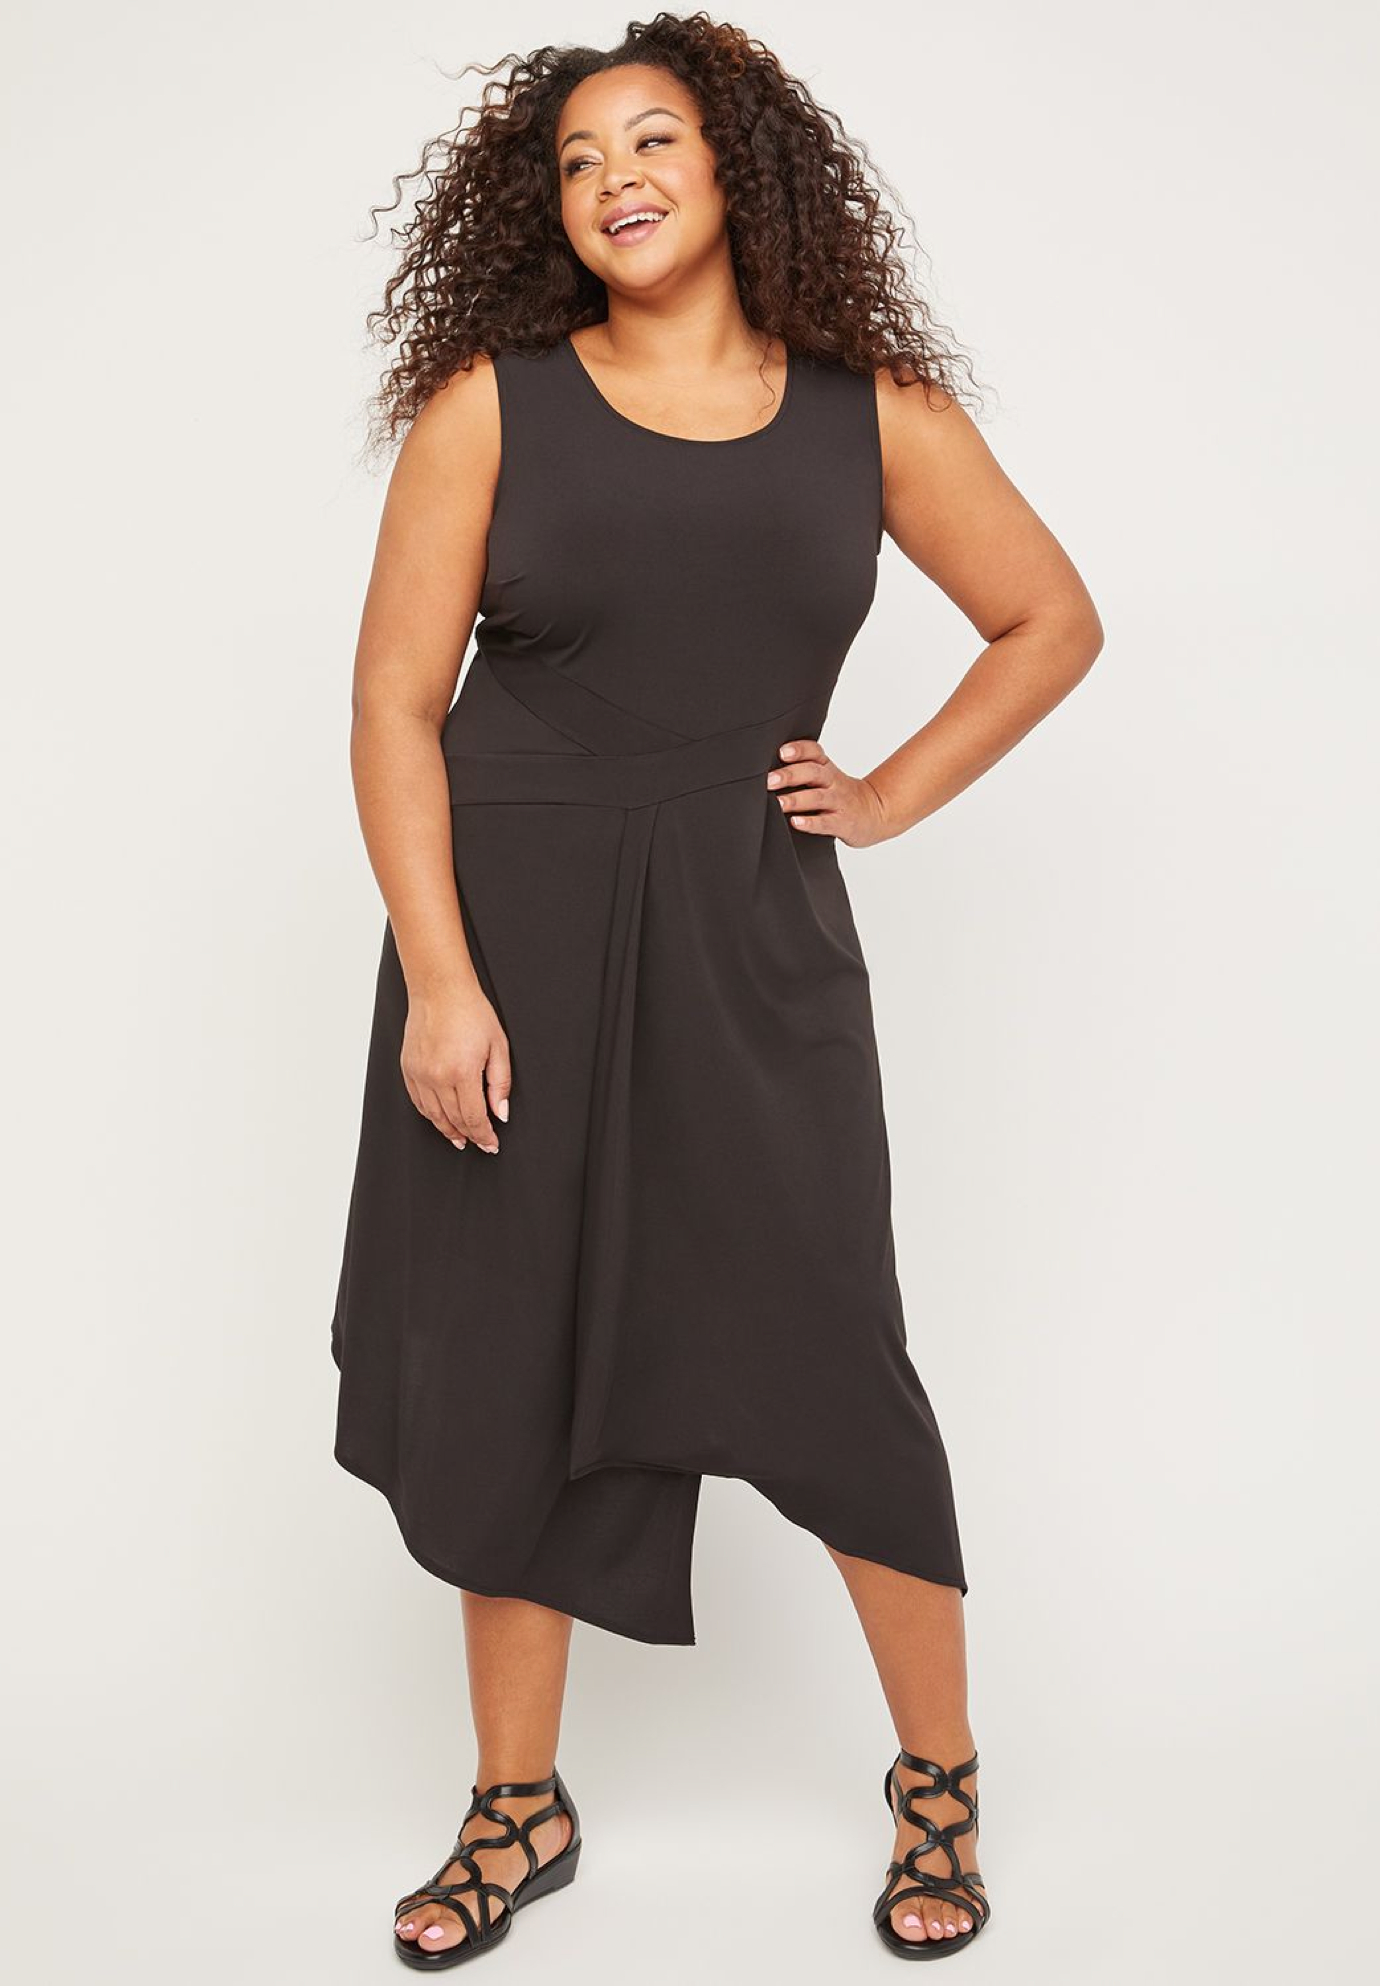 Rainey Street Fit & Flare Dress,